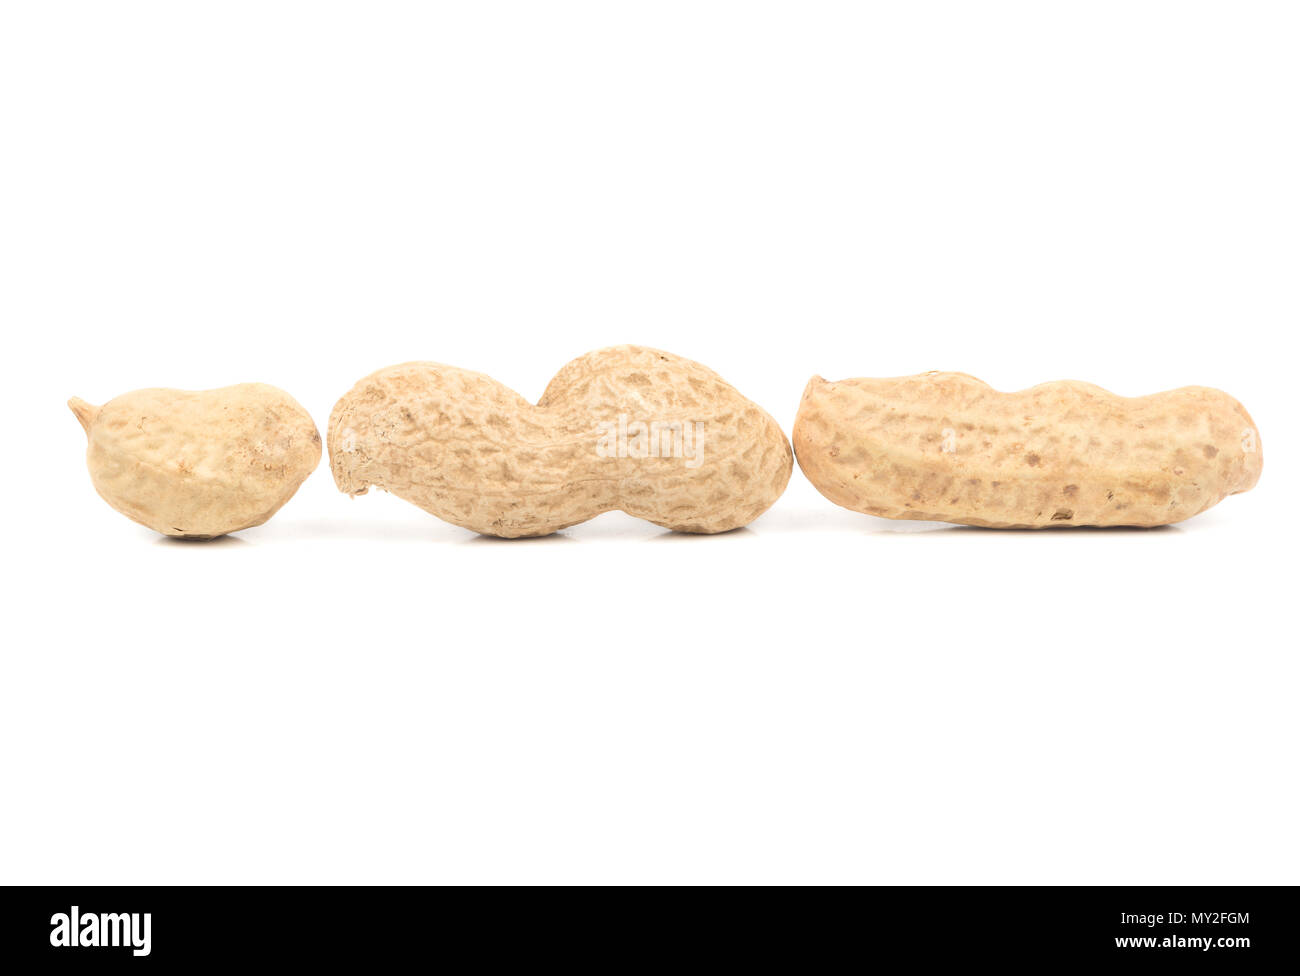 Three peanut inshell with different number of cores on a white background - Stock Image